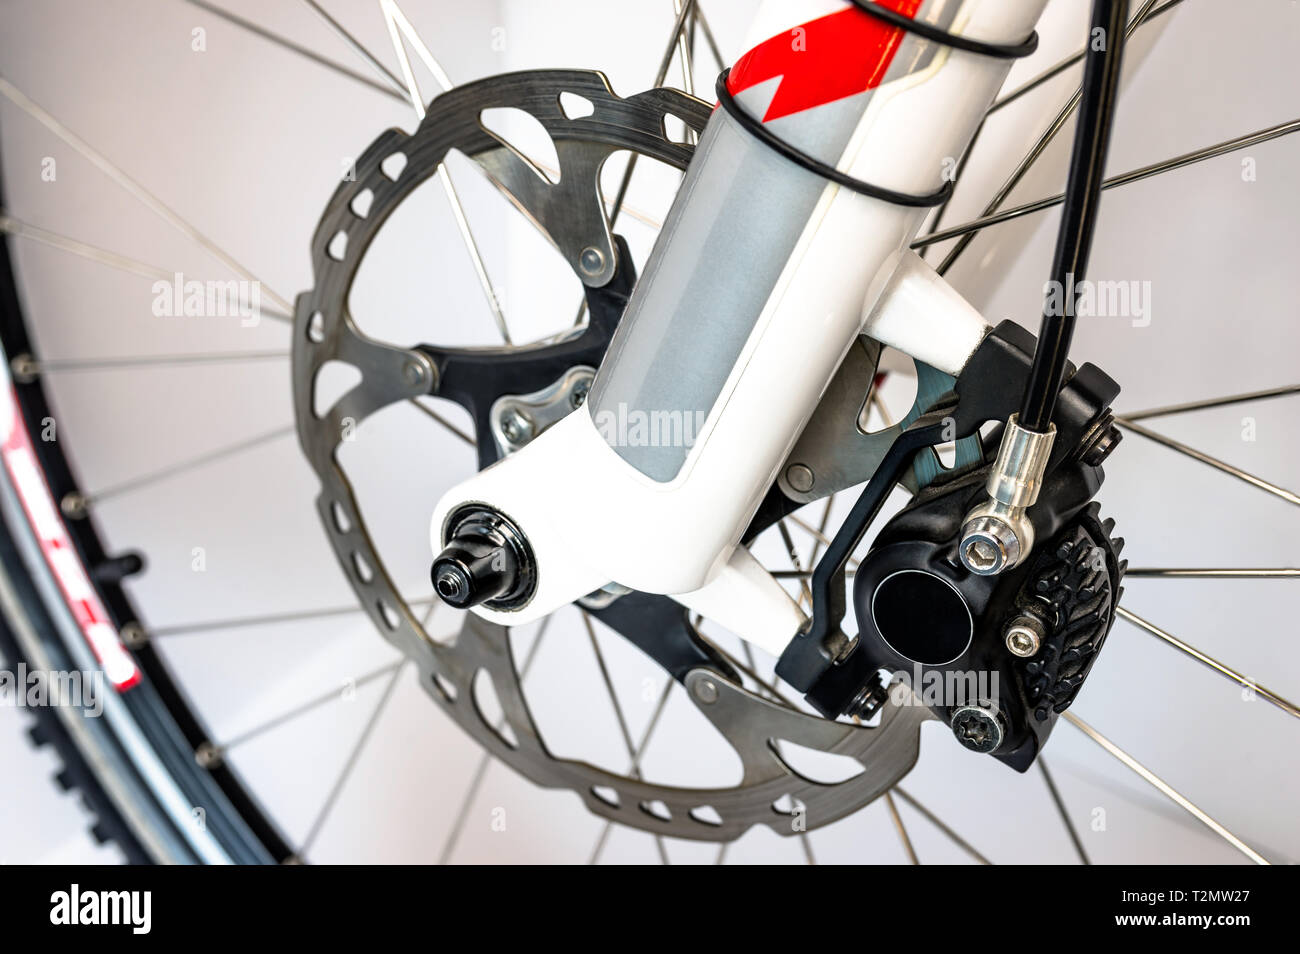 Hydraulic front disc brake on mountain bike. Isolated on a white background. High resolution, full frame. Stock Photo